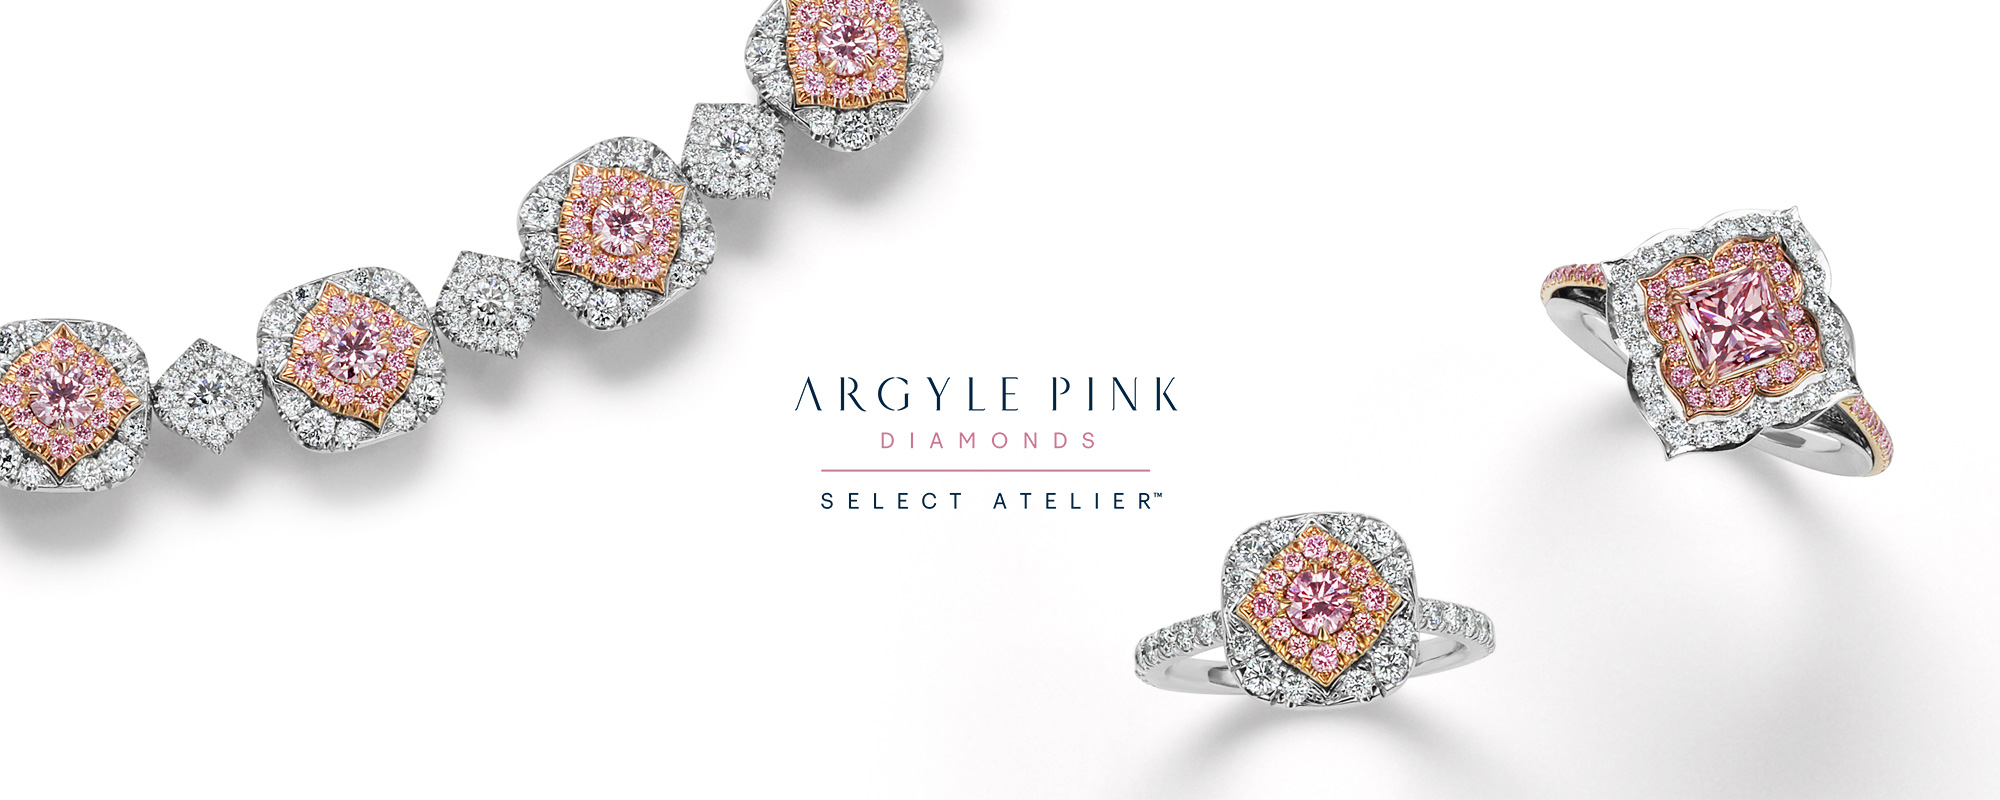 Argyle Pink Diamonds Select Atelier